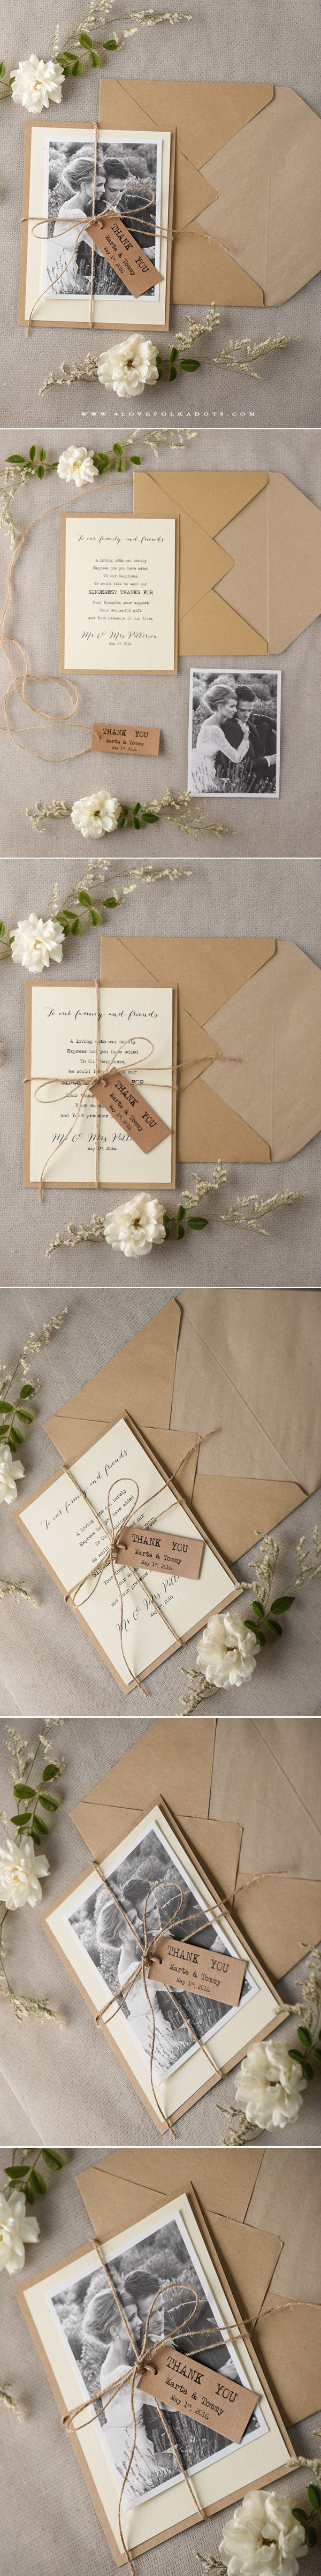 realtree wedding invitations%0A Rustic Wedding Thank You card with your photo  rustic  ecofriendly   thankyou u